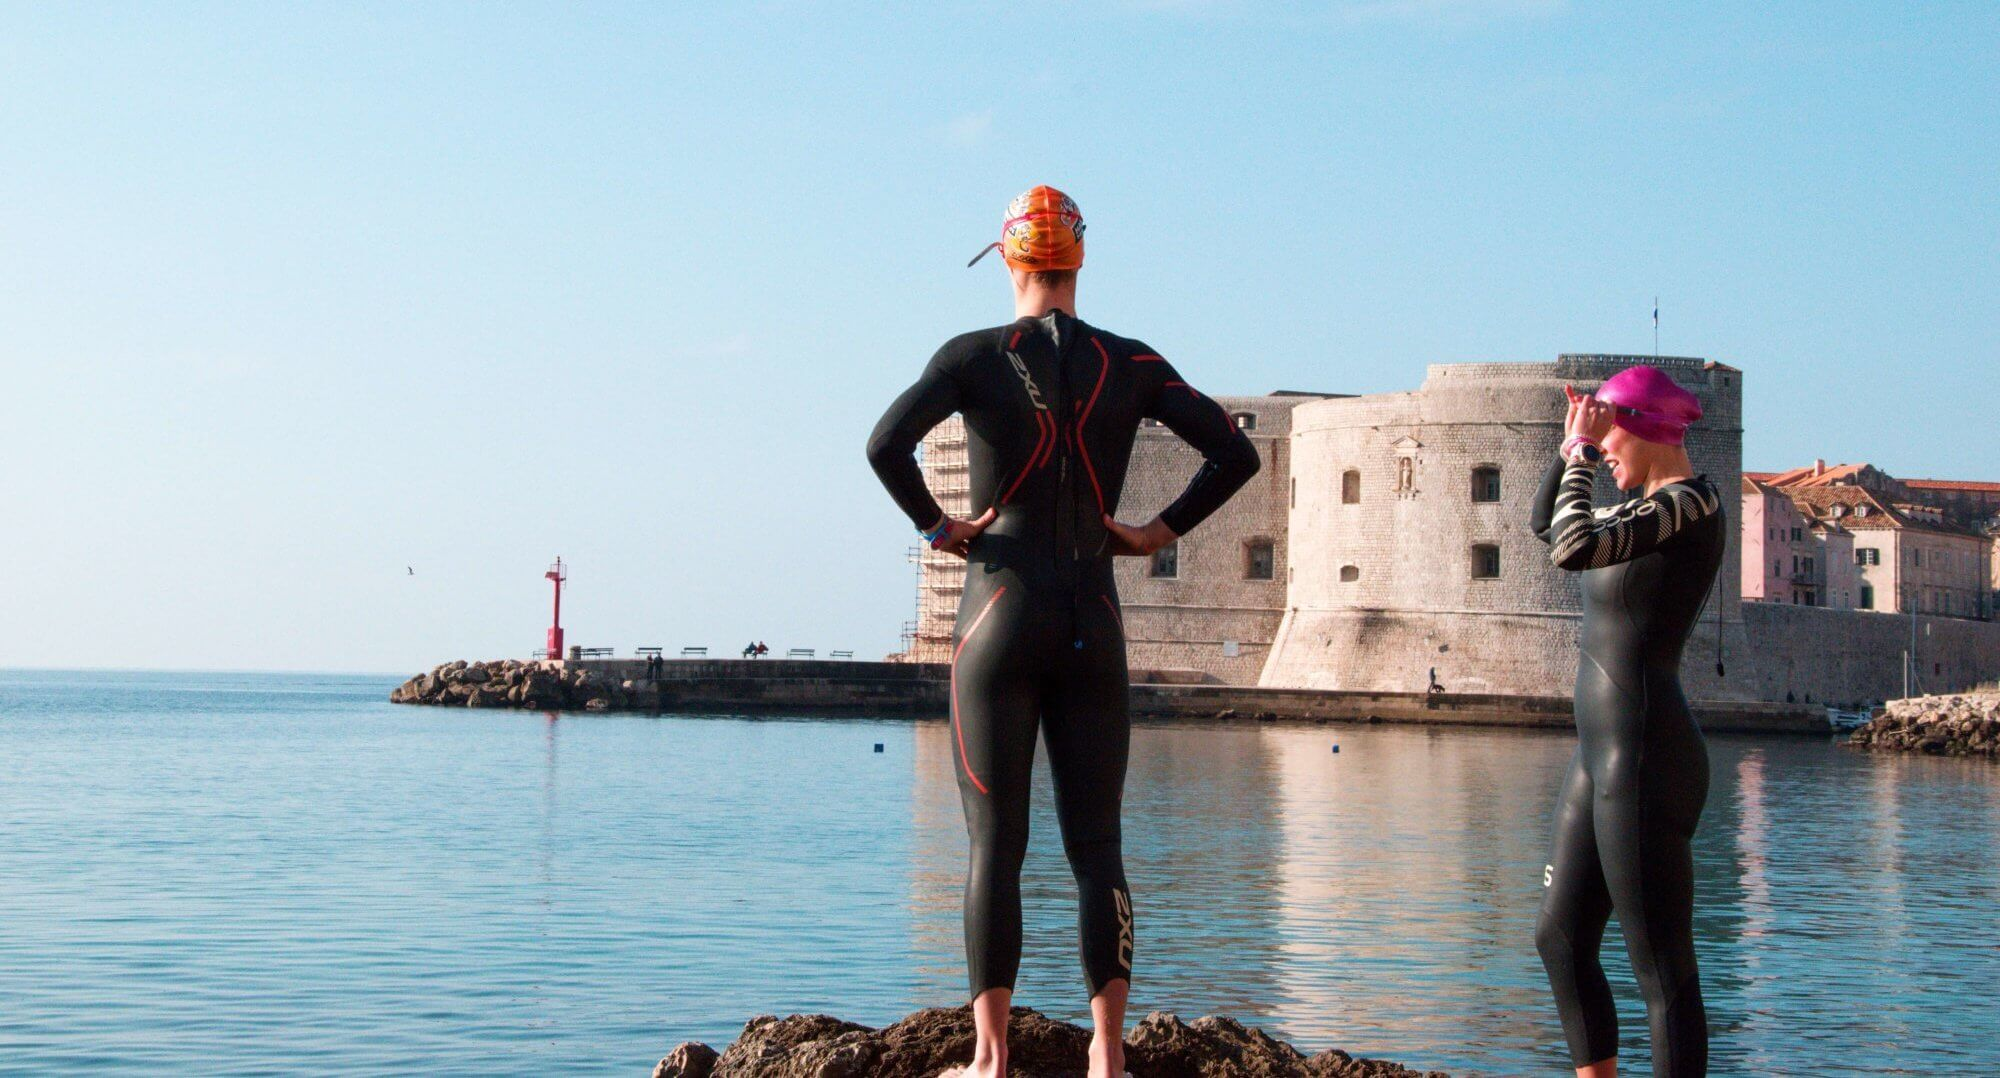 Triathlete in Dubrovnik Old Port